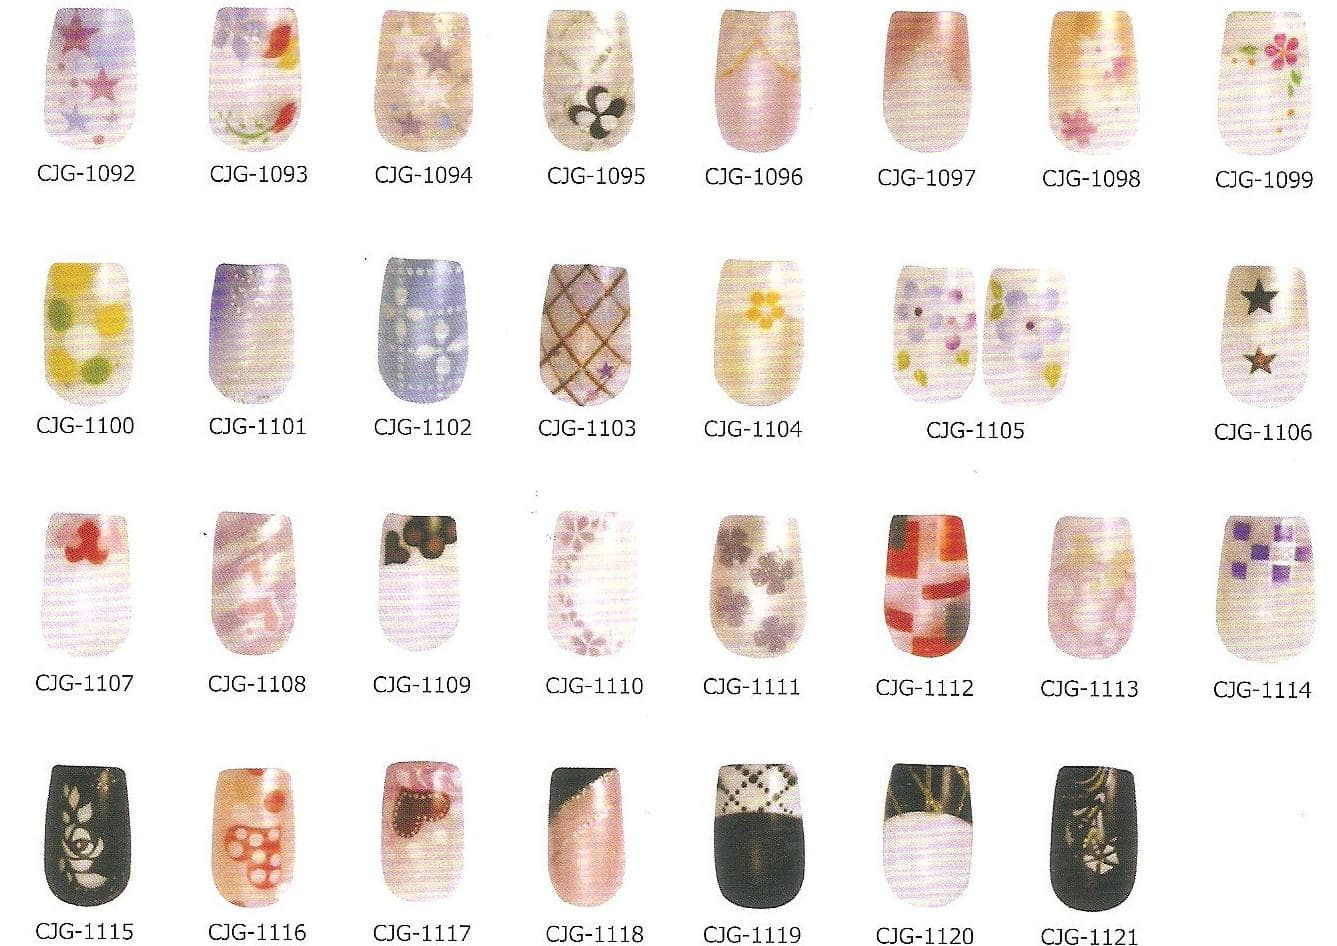 Air brush Nails stickers from M & G CO., LTD B2B marketplace portal ...